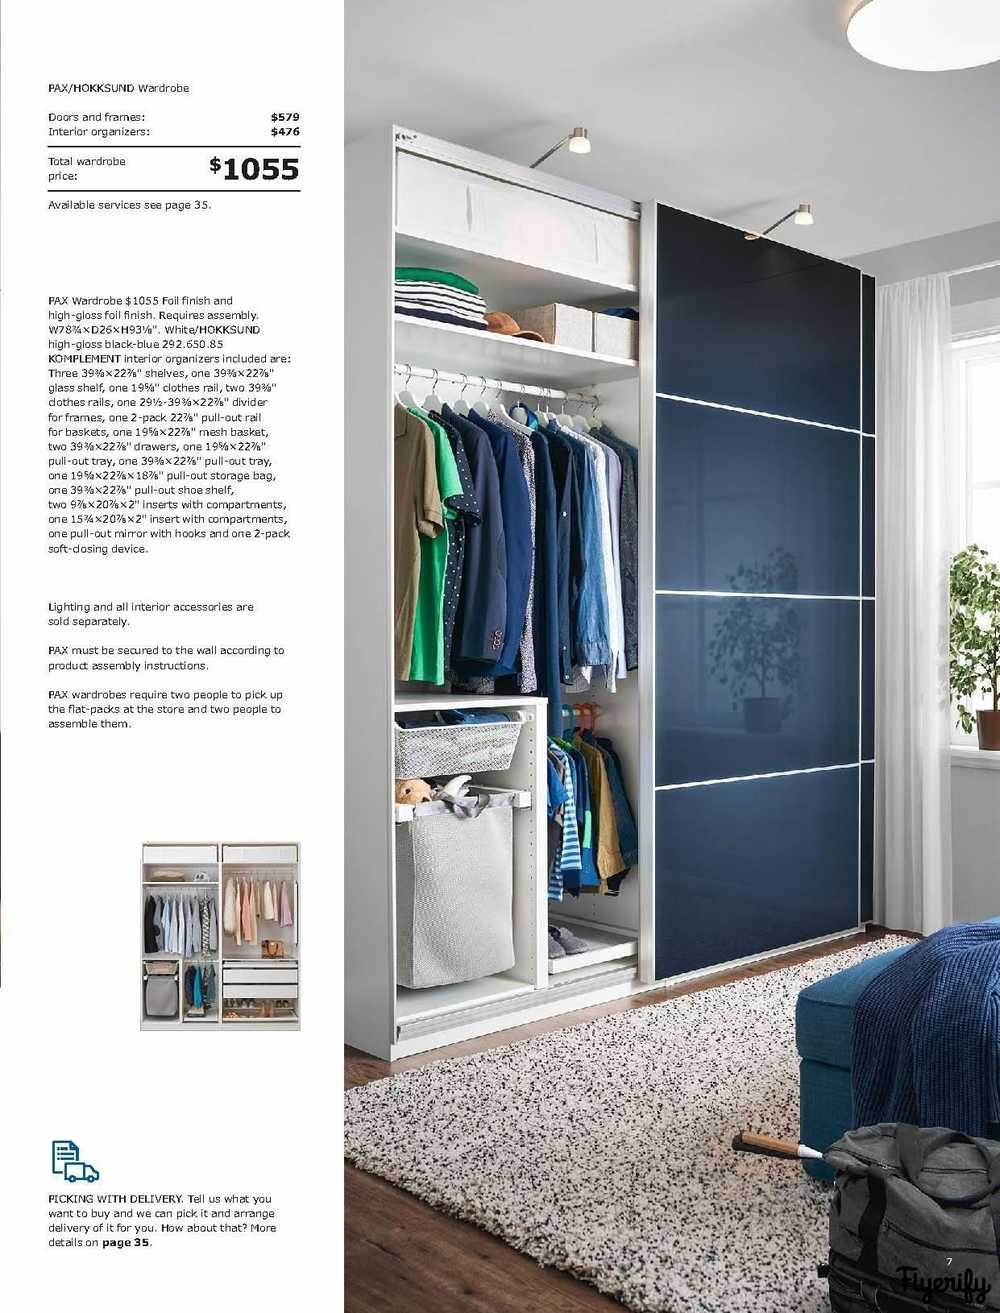 Ikea Weekly Ad Flyer August 1 2018 To July 31 2019 Canada